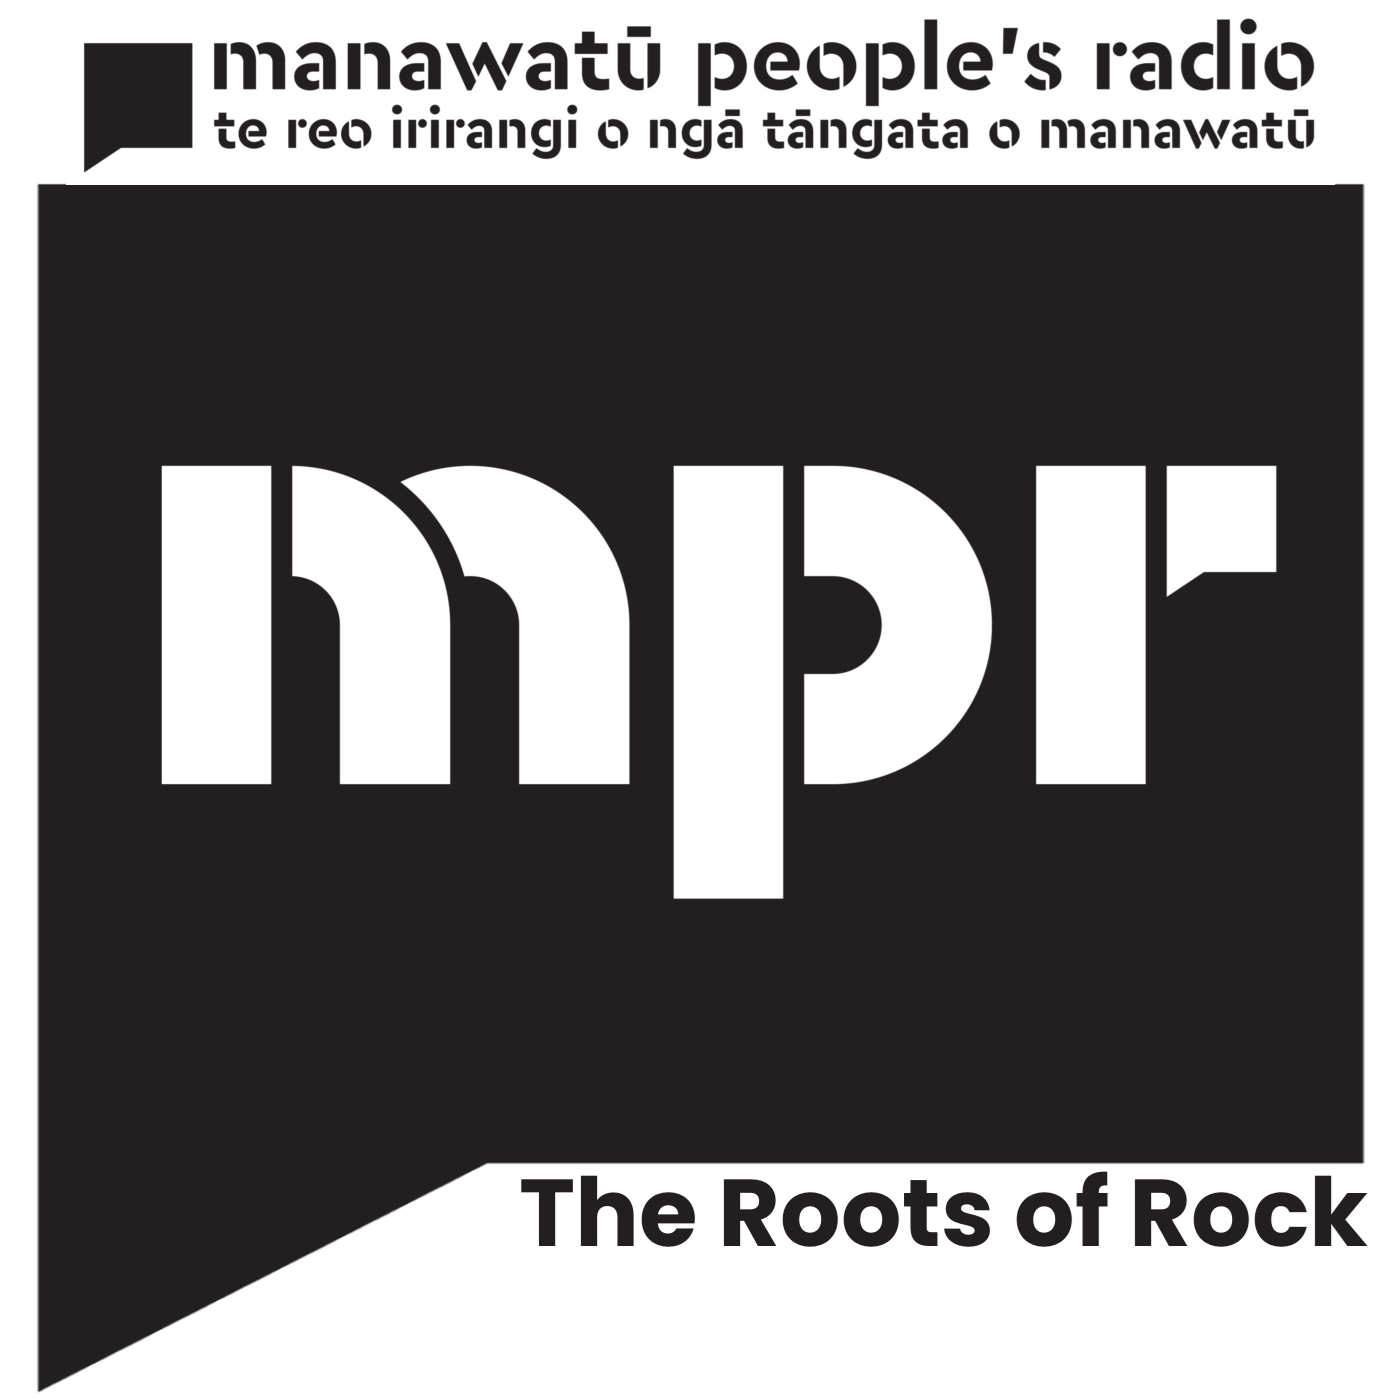 The Roots of Rock Episode 79 - 17-09-2019